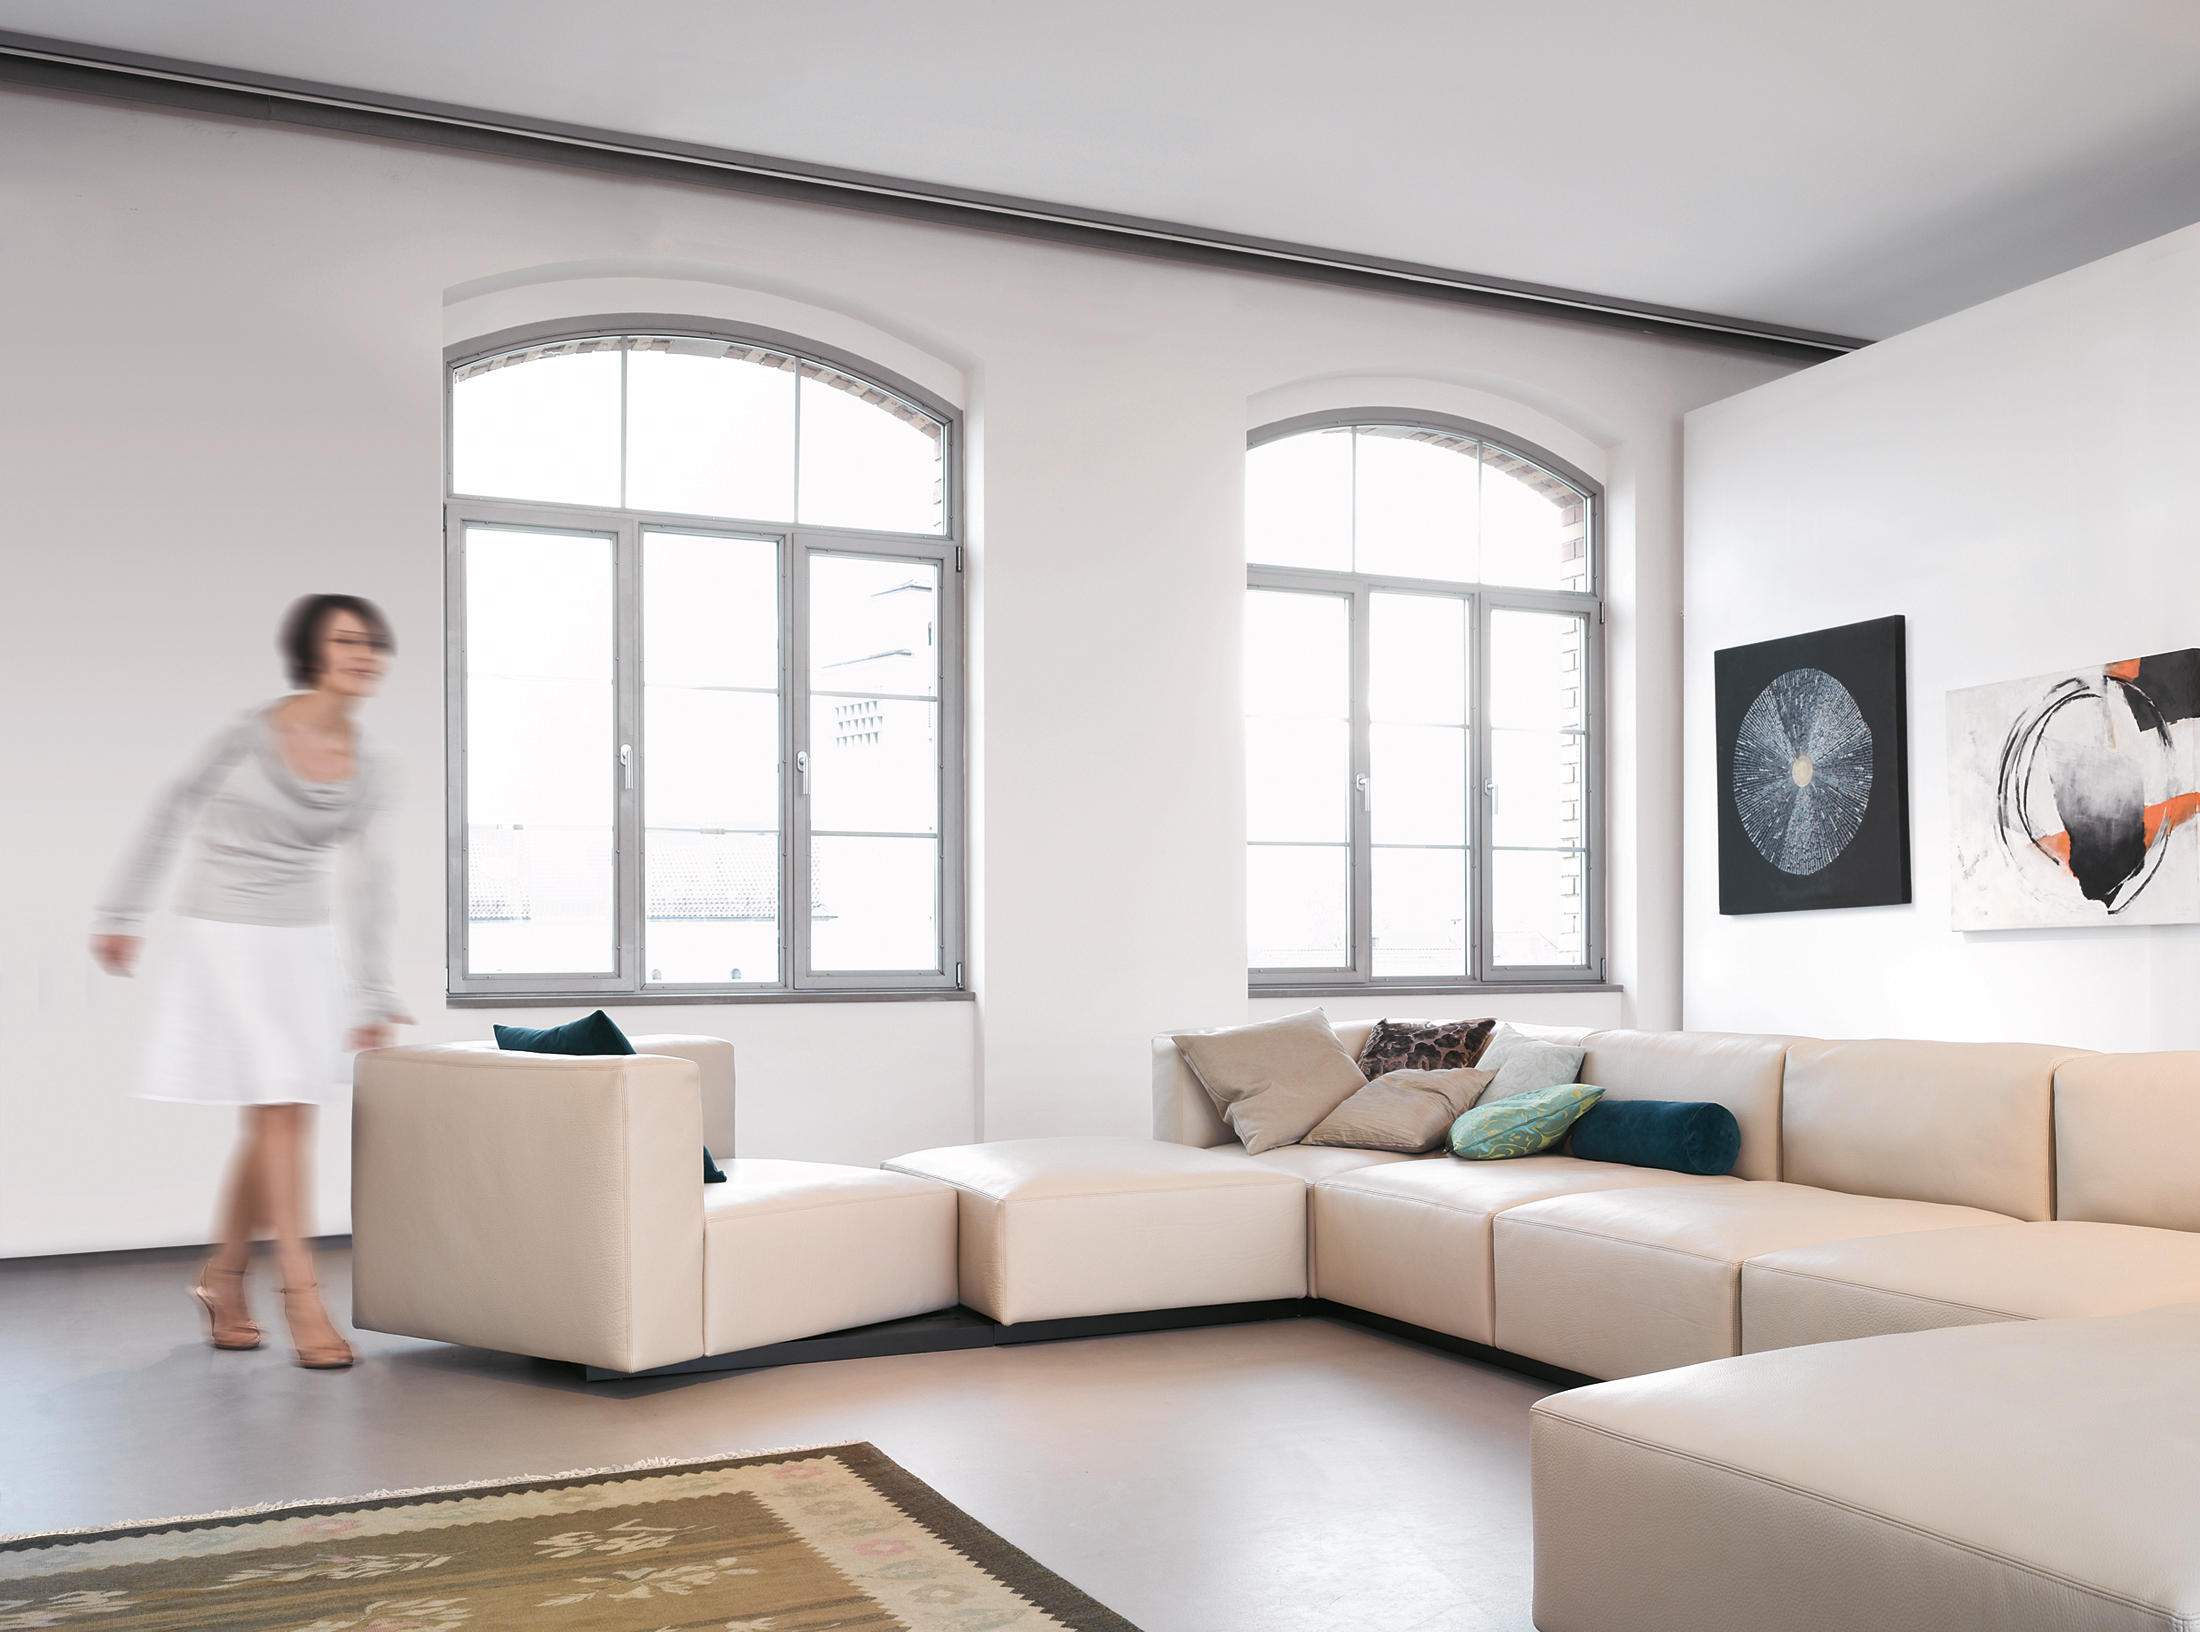 living landscape 730 modular seating systems from walter knoll architonic. Black Bedroom Furniture Sets. Home Design Ideas